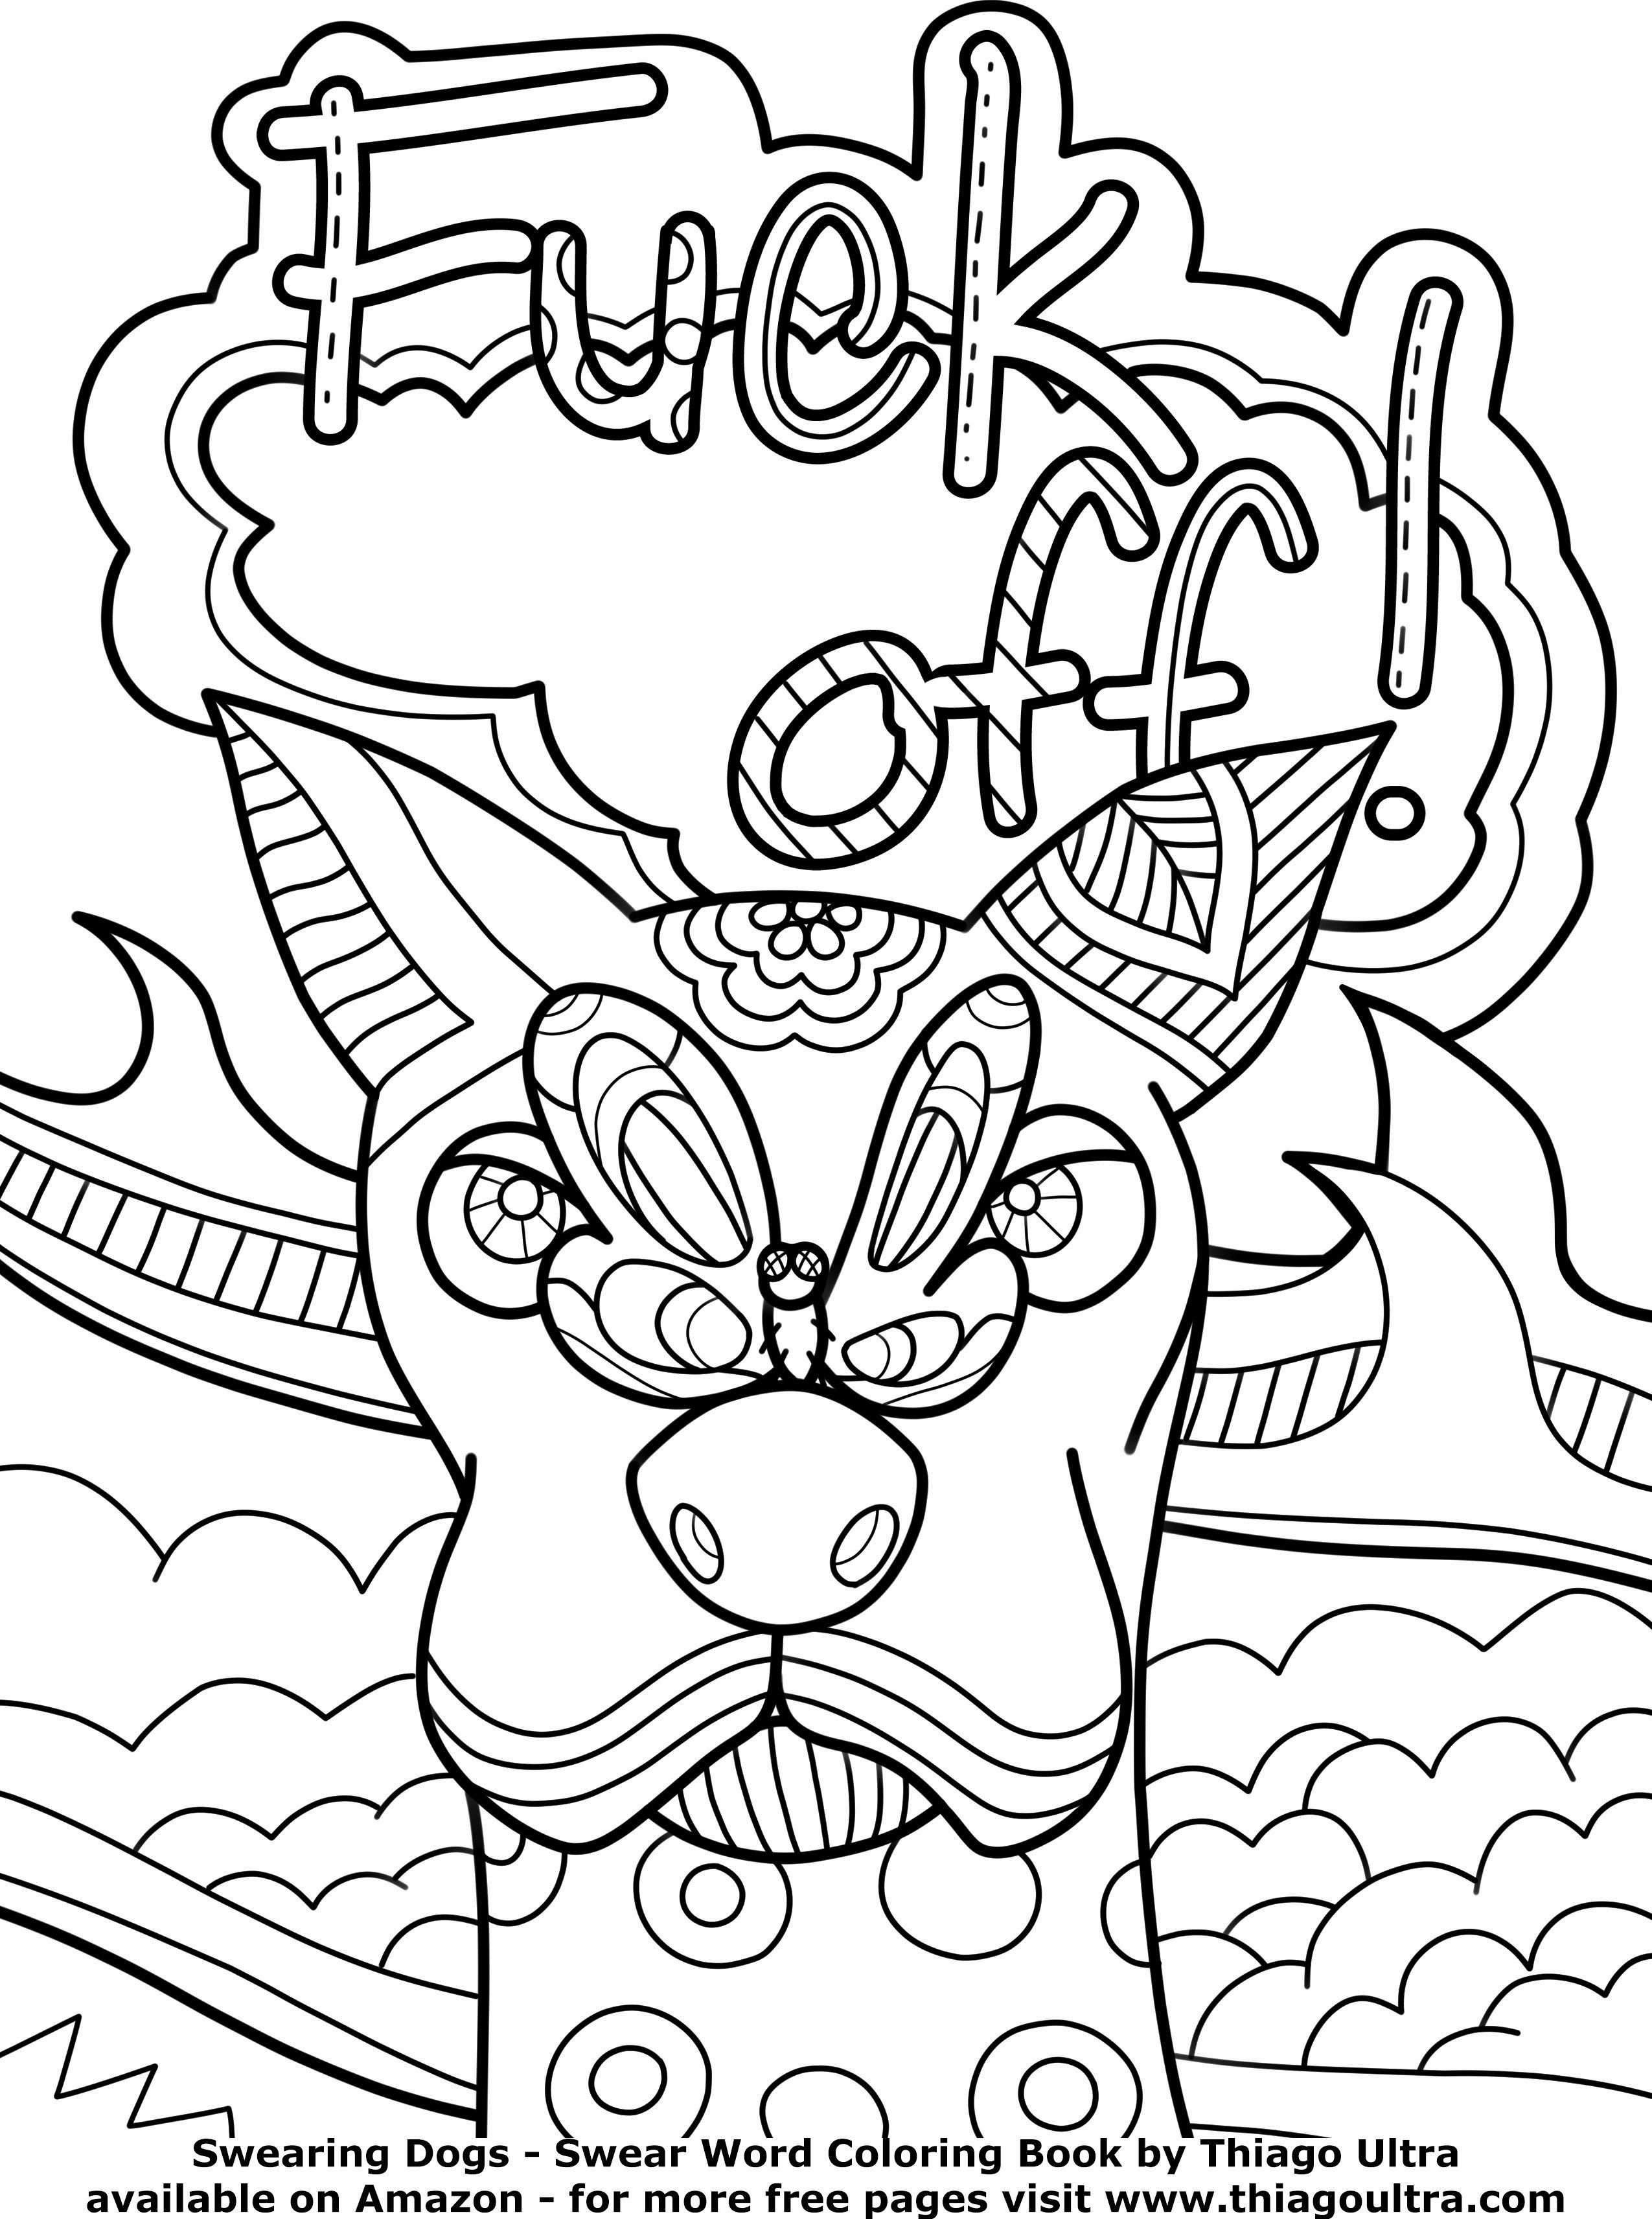 - Adult Cursing Coloring Book Unique 10 Best Images About Swearing